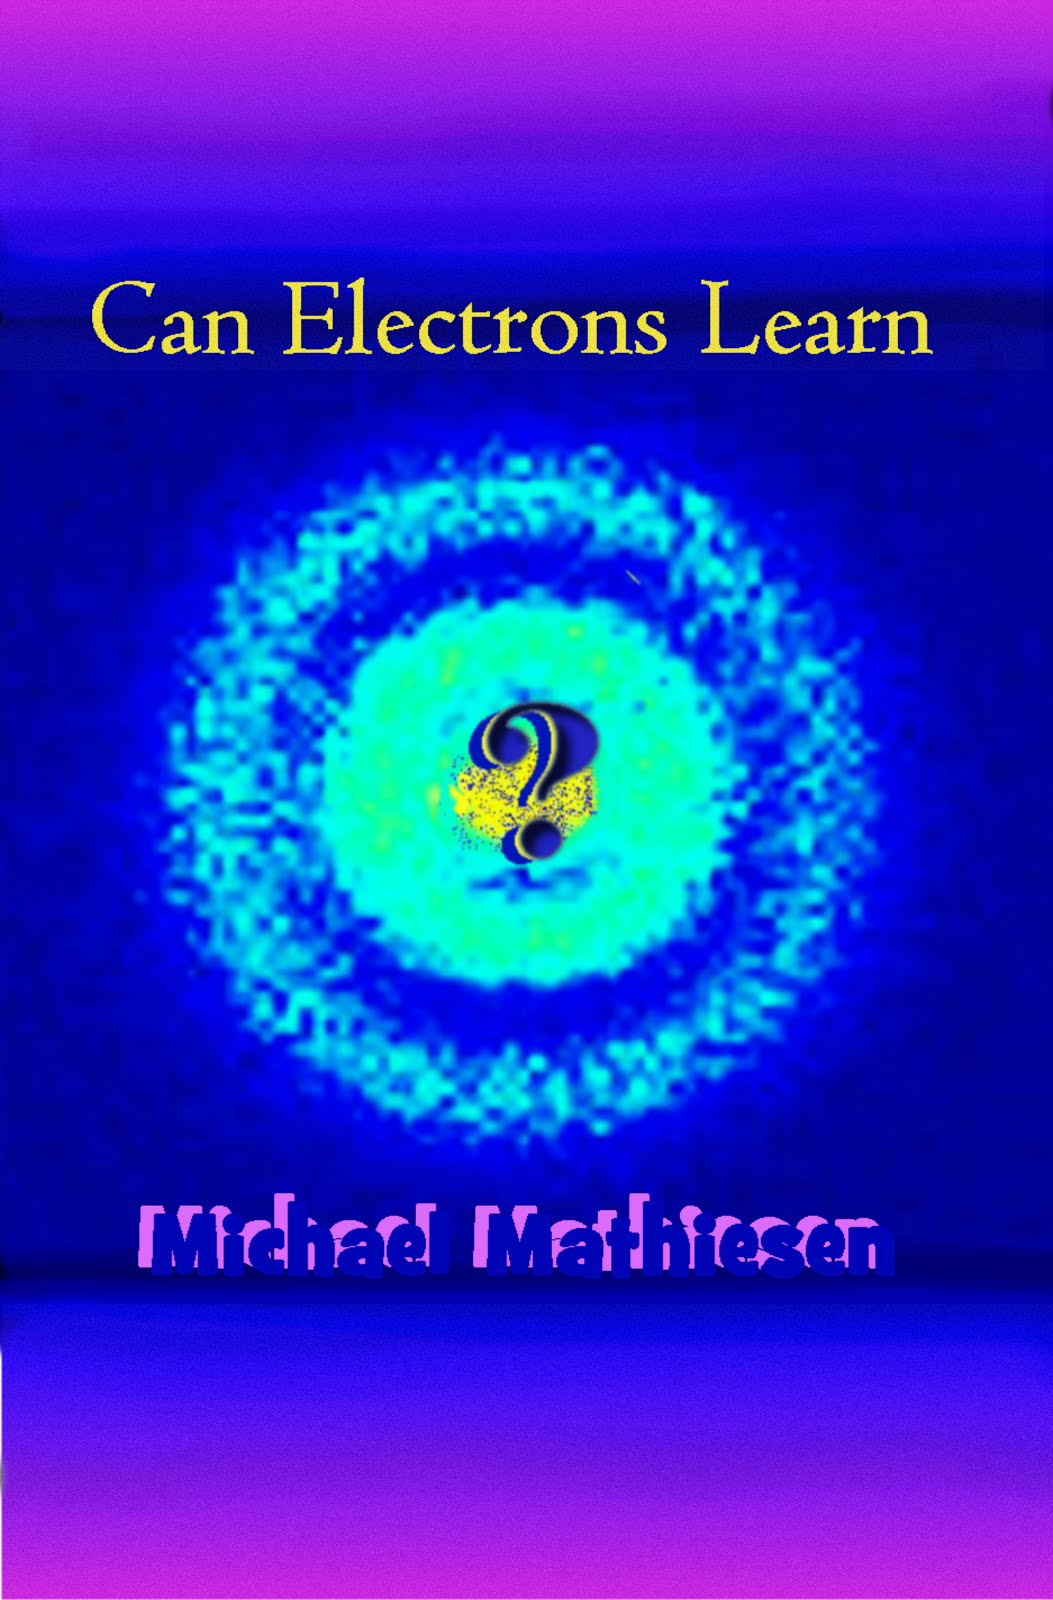 My Research Can Electrons Learn